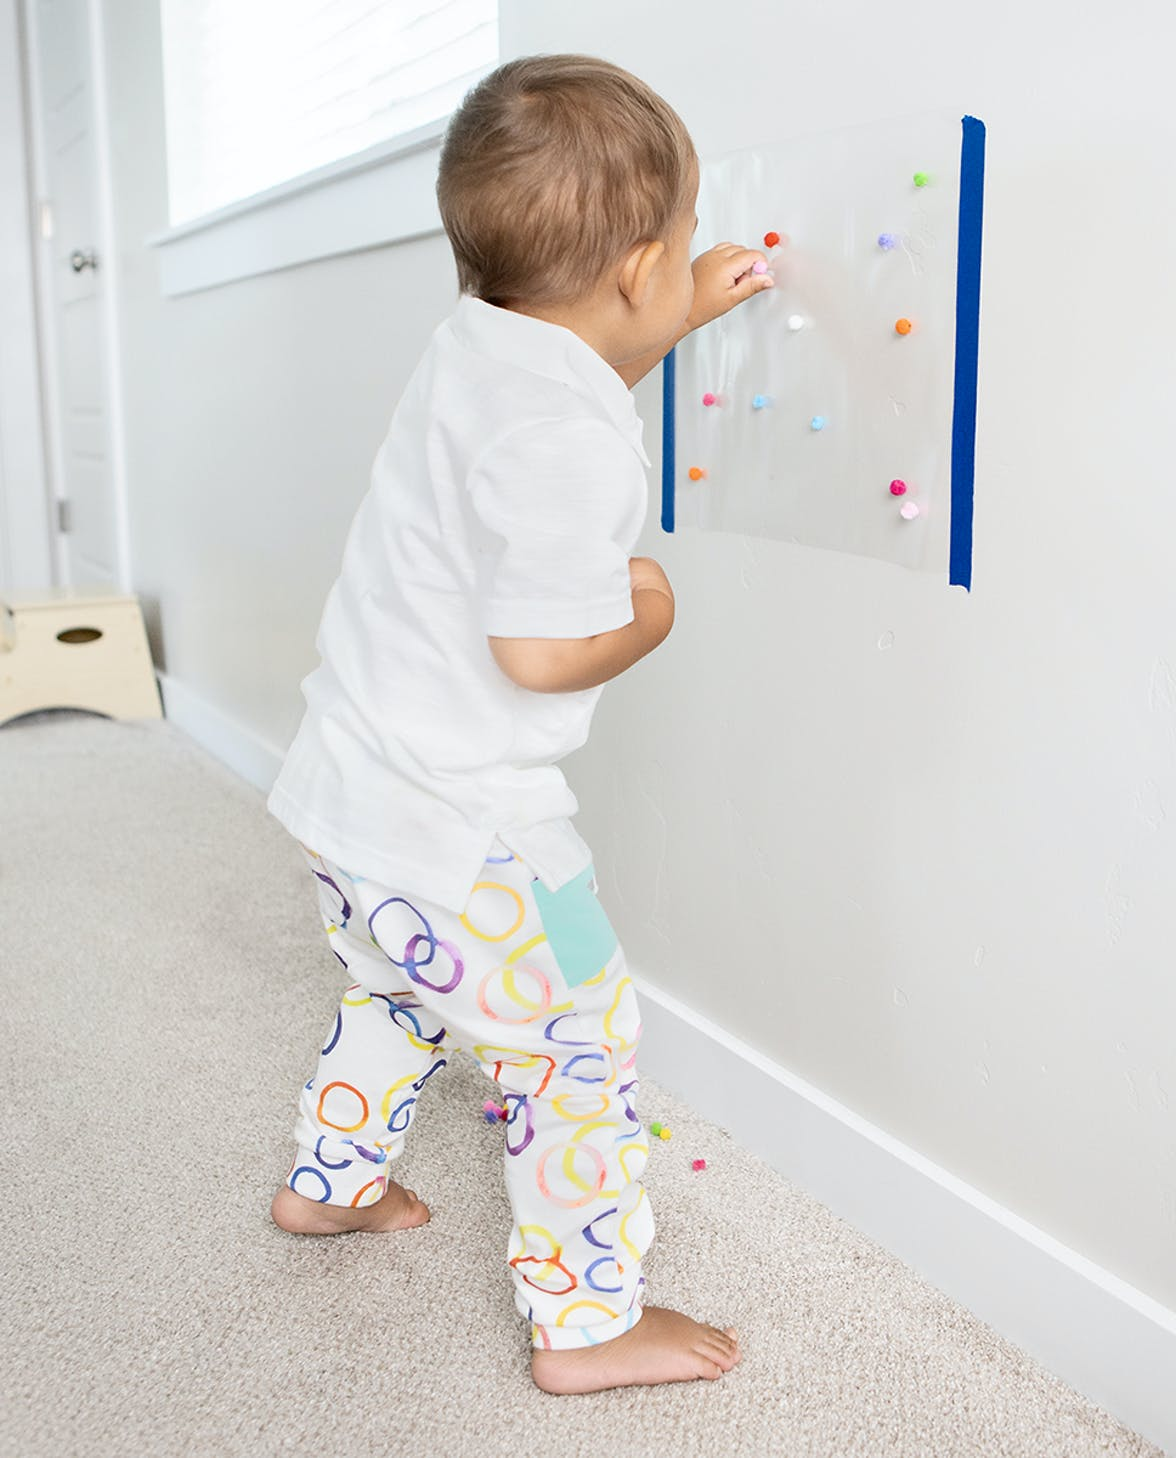 Young child putting pom poms on a sticky paper on the wall